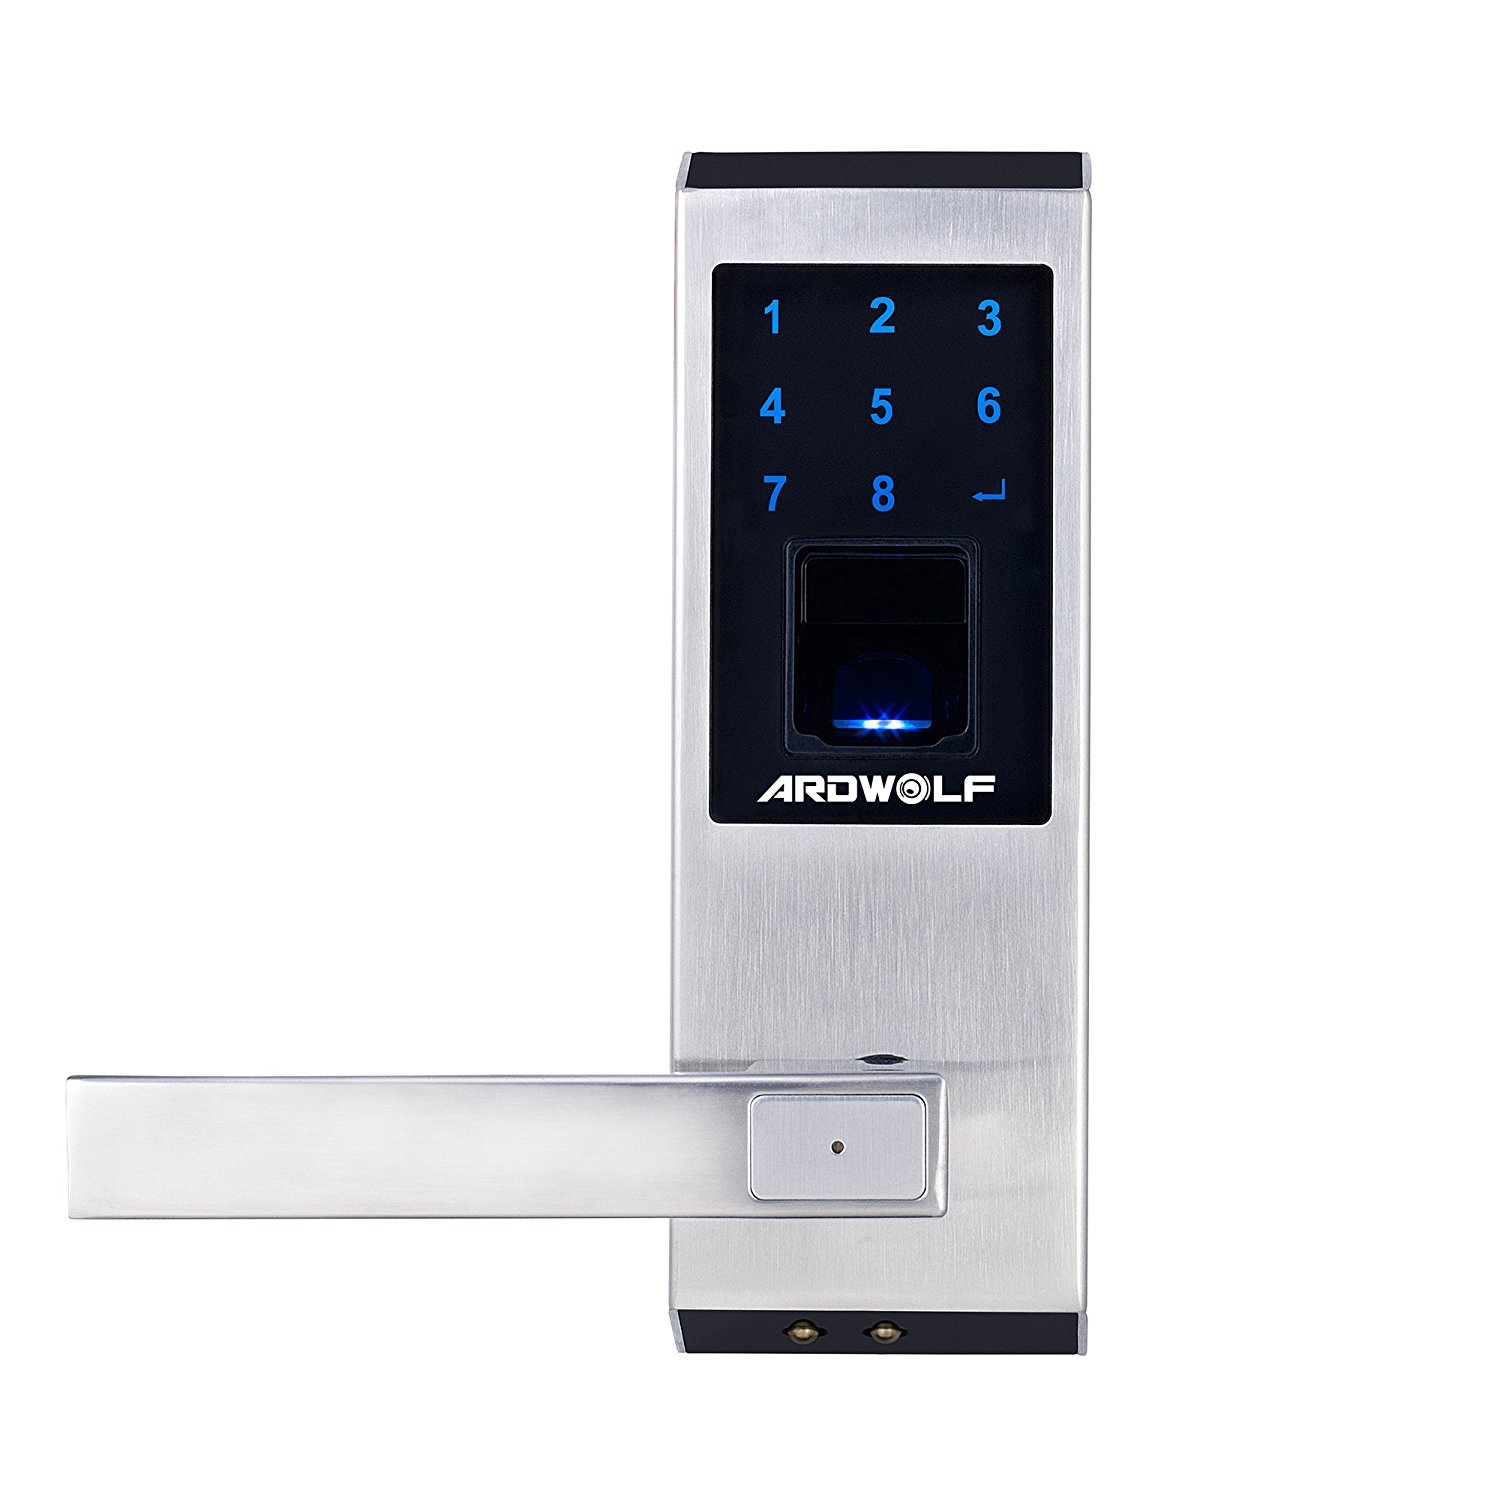 Ardwolf A20 Security High-sensitivity High-Recognition Rate Keyless Biometric Fingerprint Door Lock